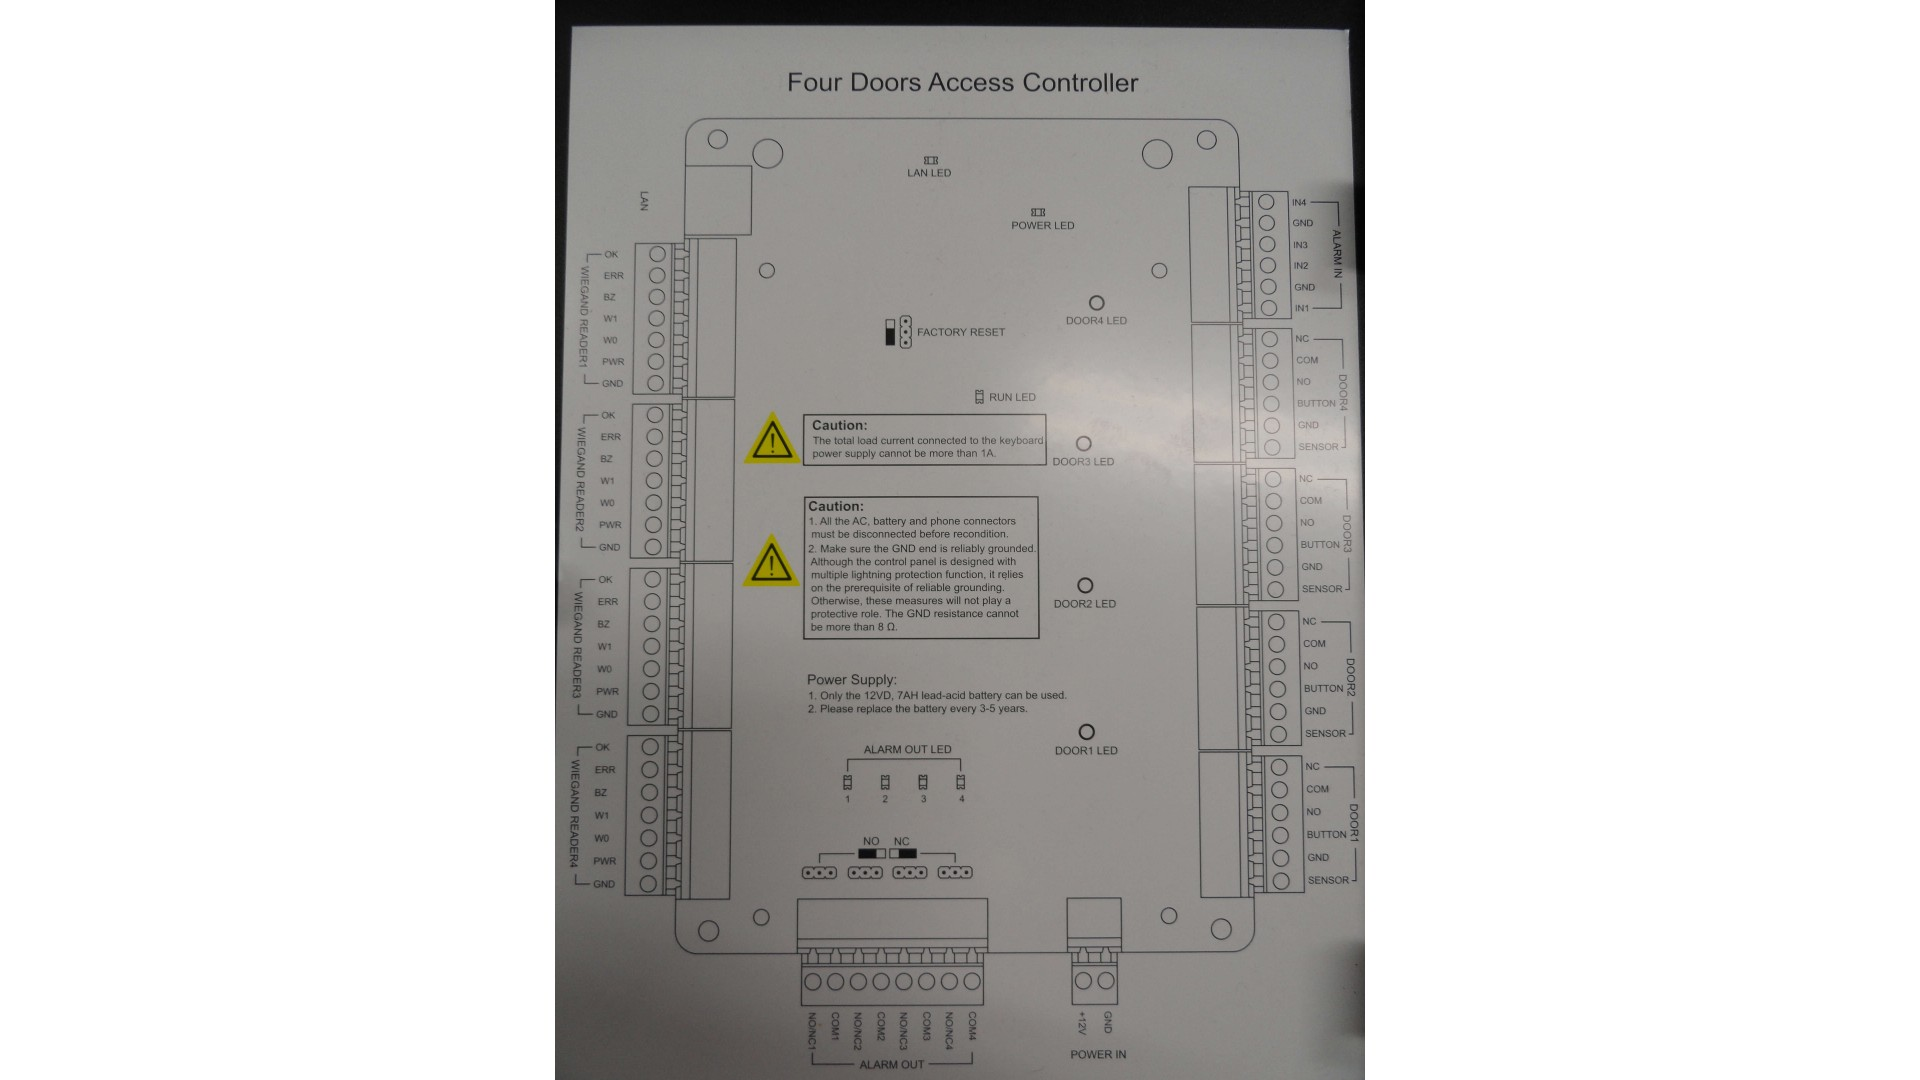 80 Series Four Door Access Controller Leds In Parallel Cannot Be Placed Until Zoom Images